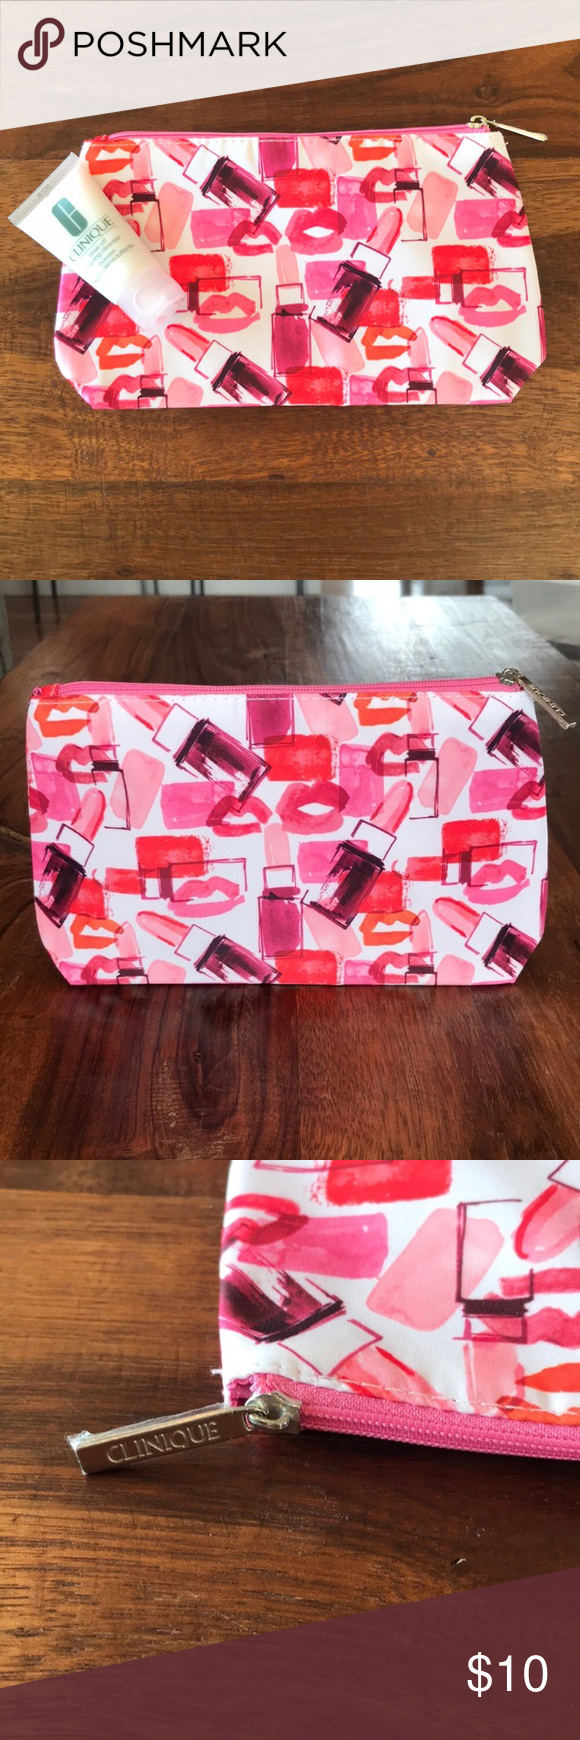 NEW Clinique Makeup Bag + FREE Cleanser NWOT Brand new